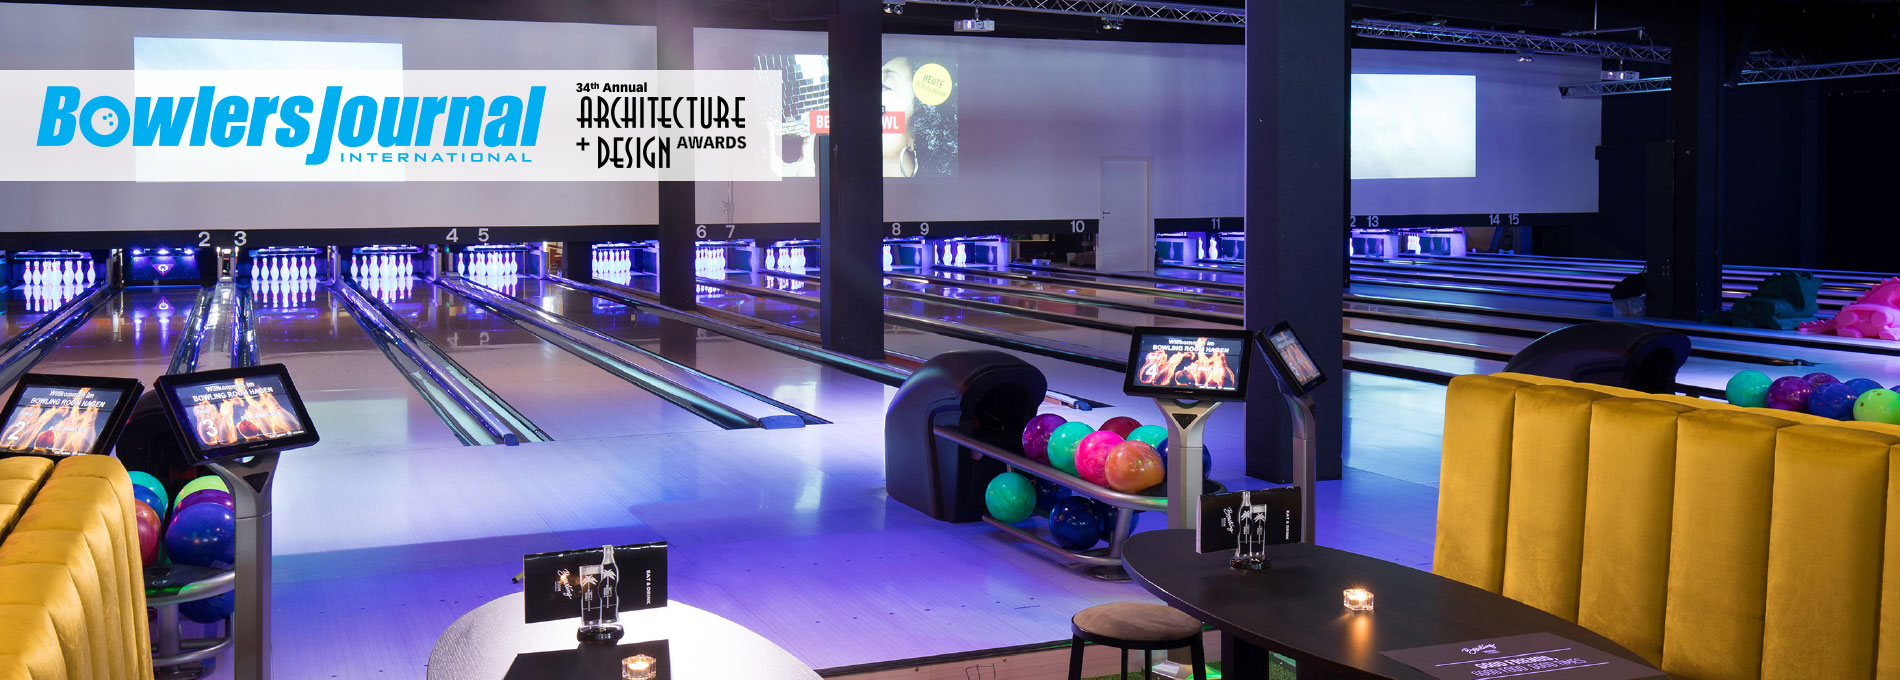 qubicaamf-bowling-34th-architecture-and-design-awards-banner-bowling-room-hager-germany